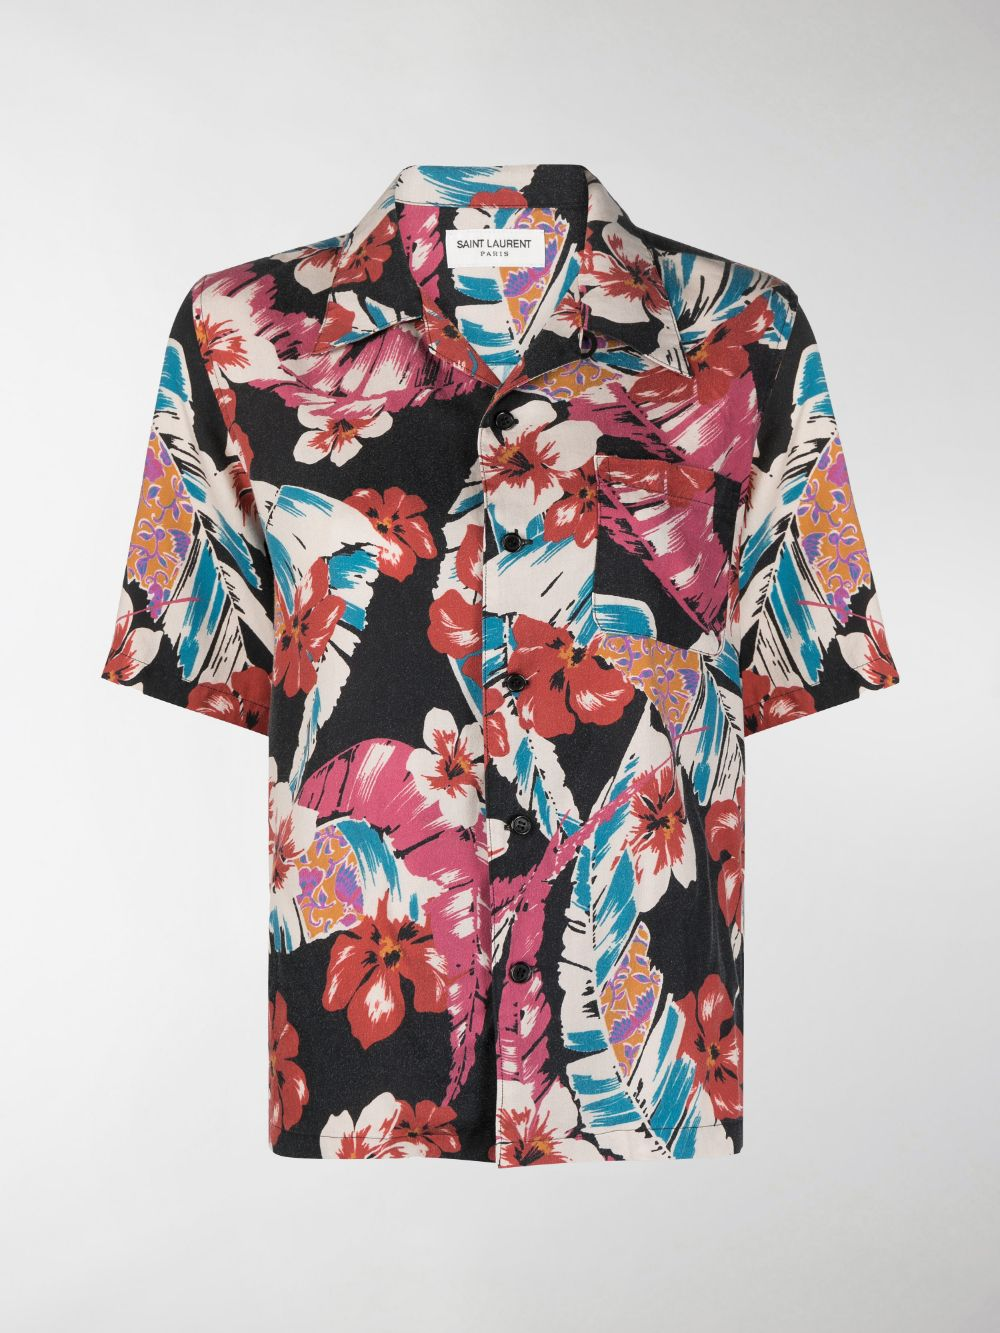 Picture of Saint Laurent | All-Over Floral-Print Shirt